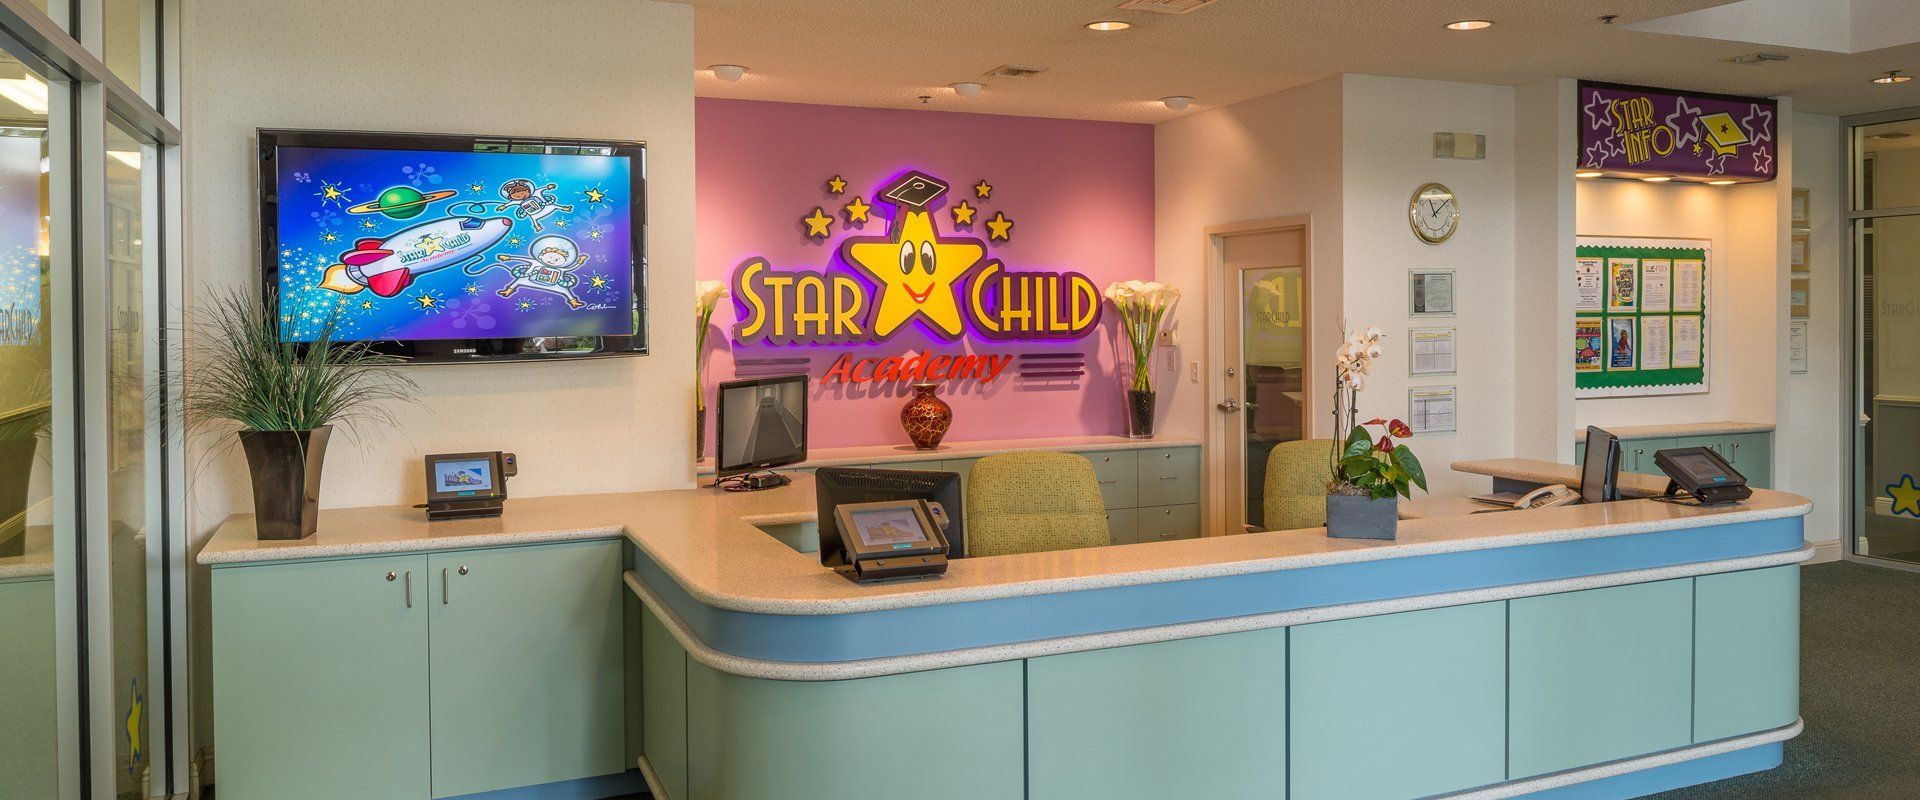 Photo of StarChild Academy's Front Lobby